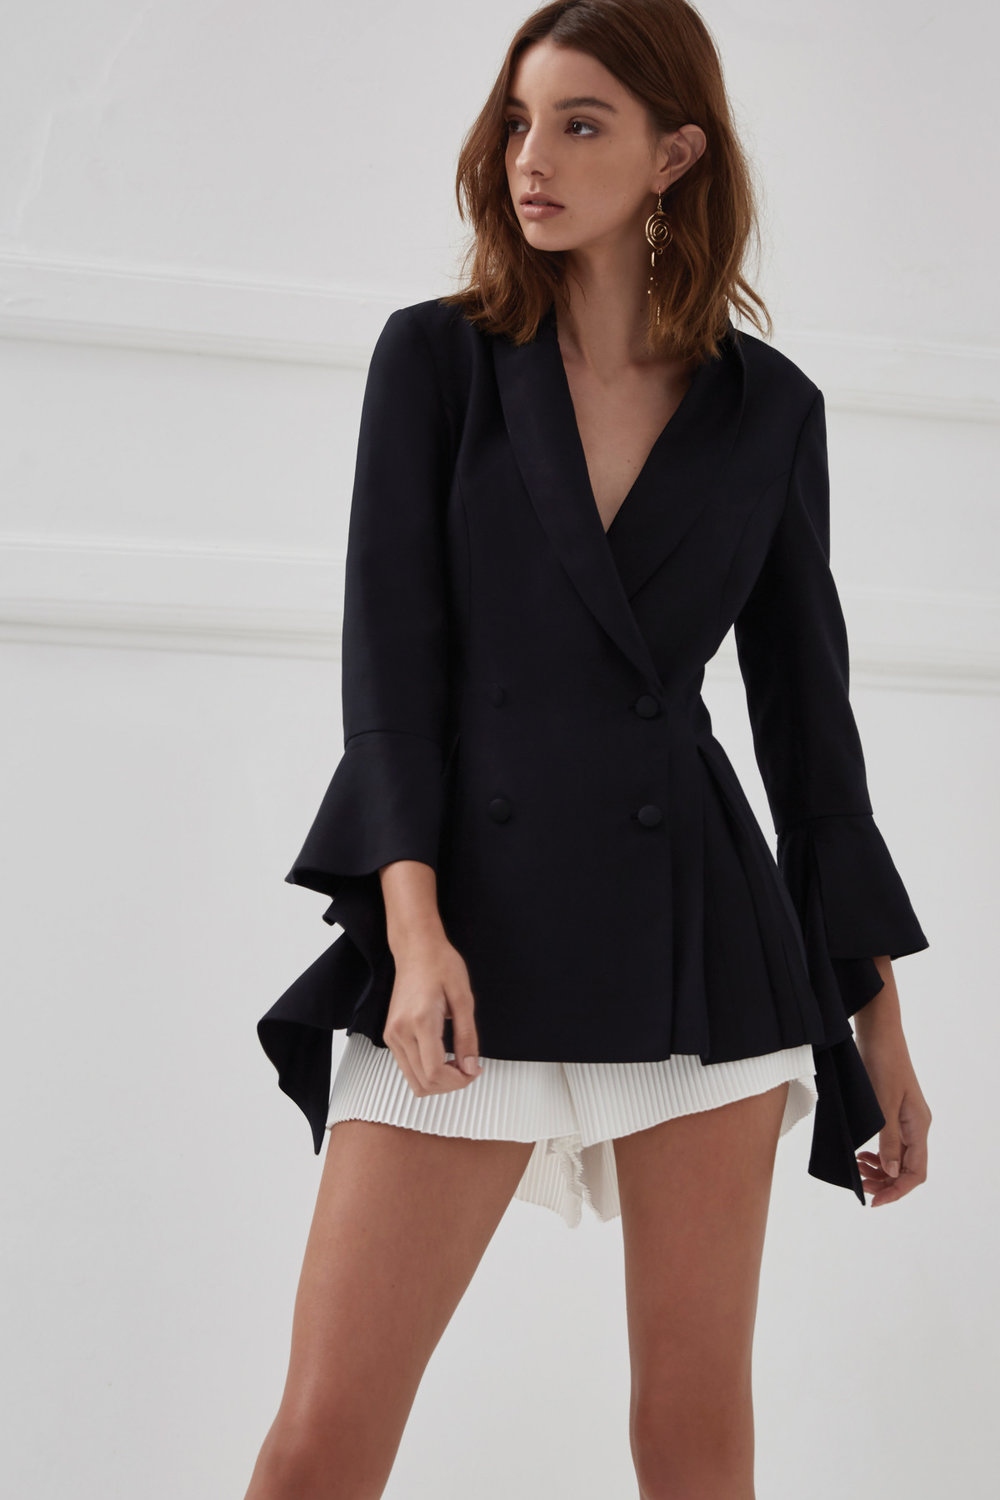 Shop C/MEO We'll Be Alright Blazer.